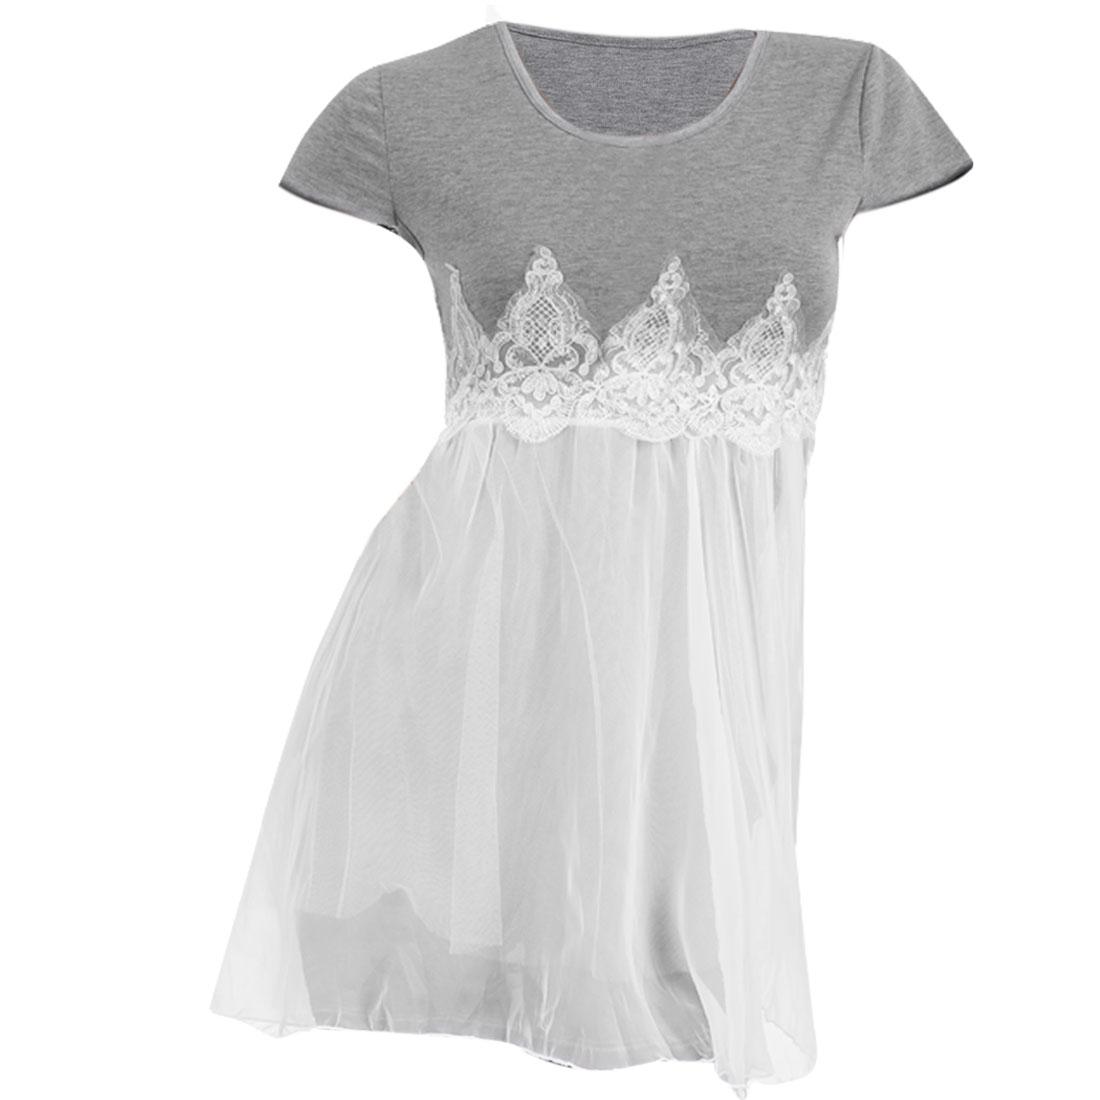 Lady See-through Spliced Mesh Short Sleeve Sexy Dress Gray White XS